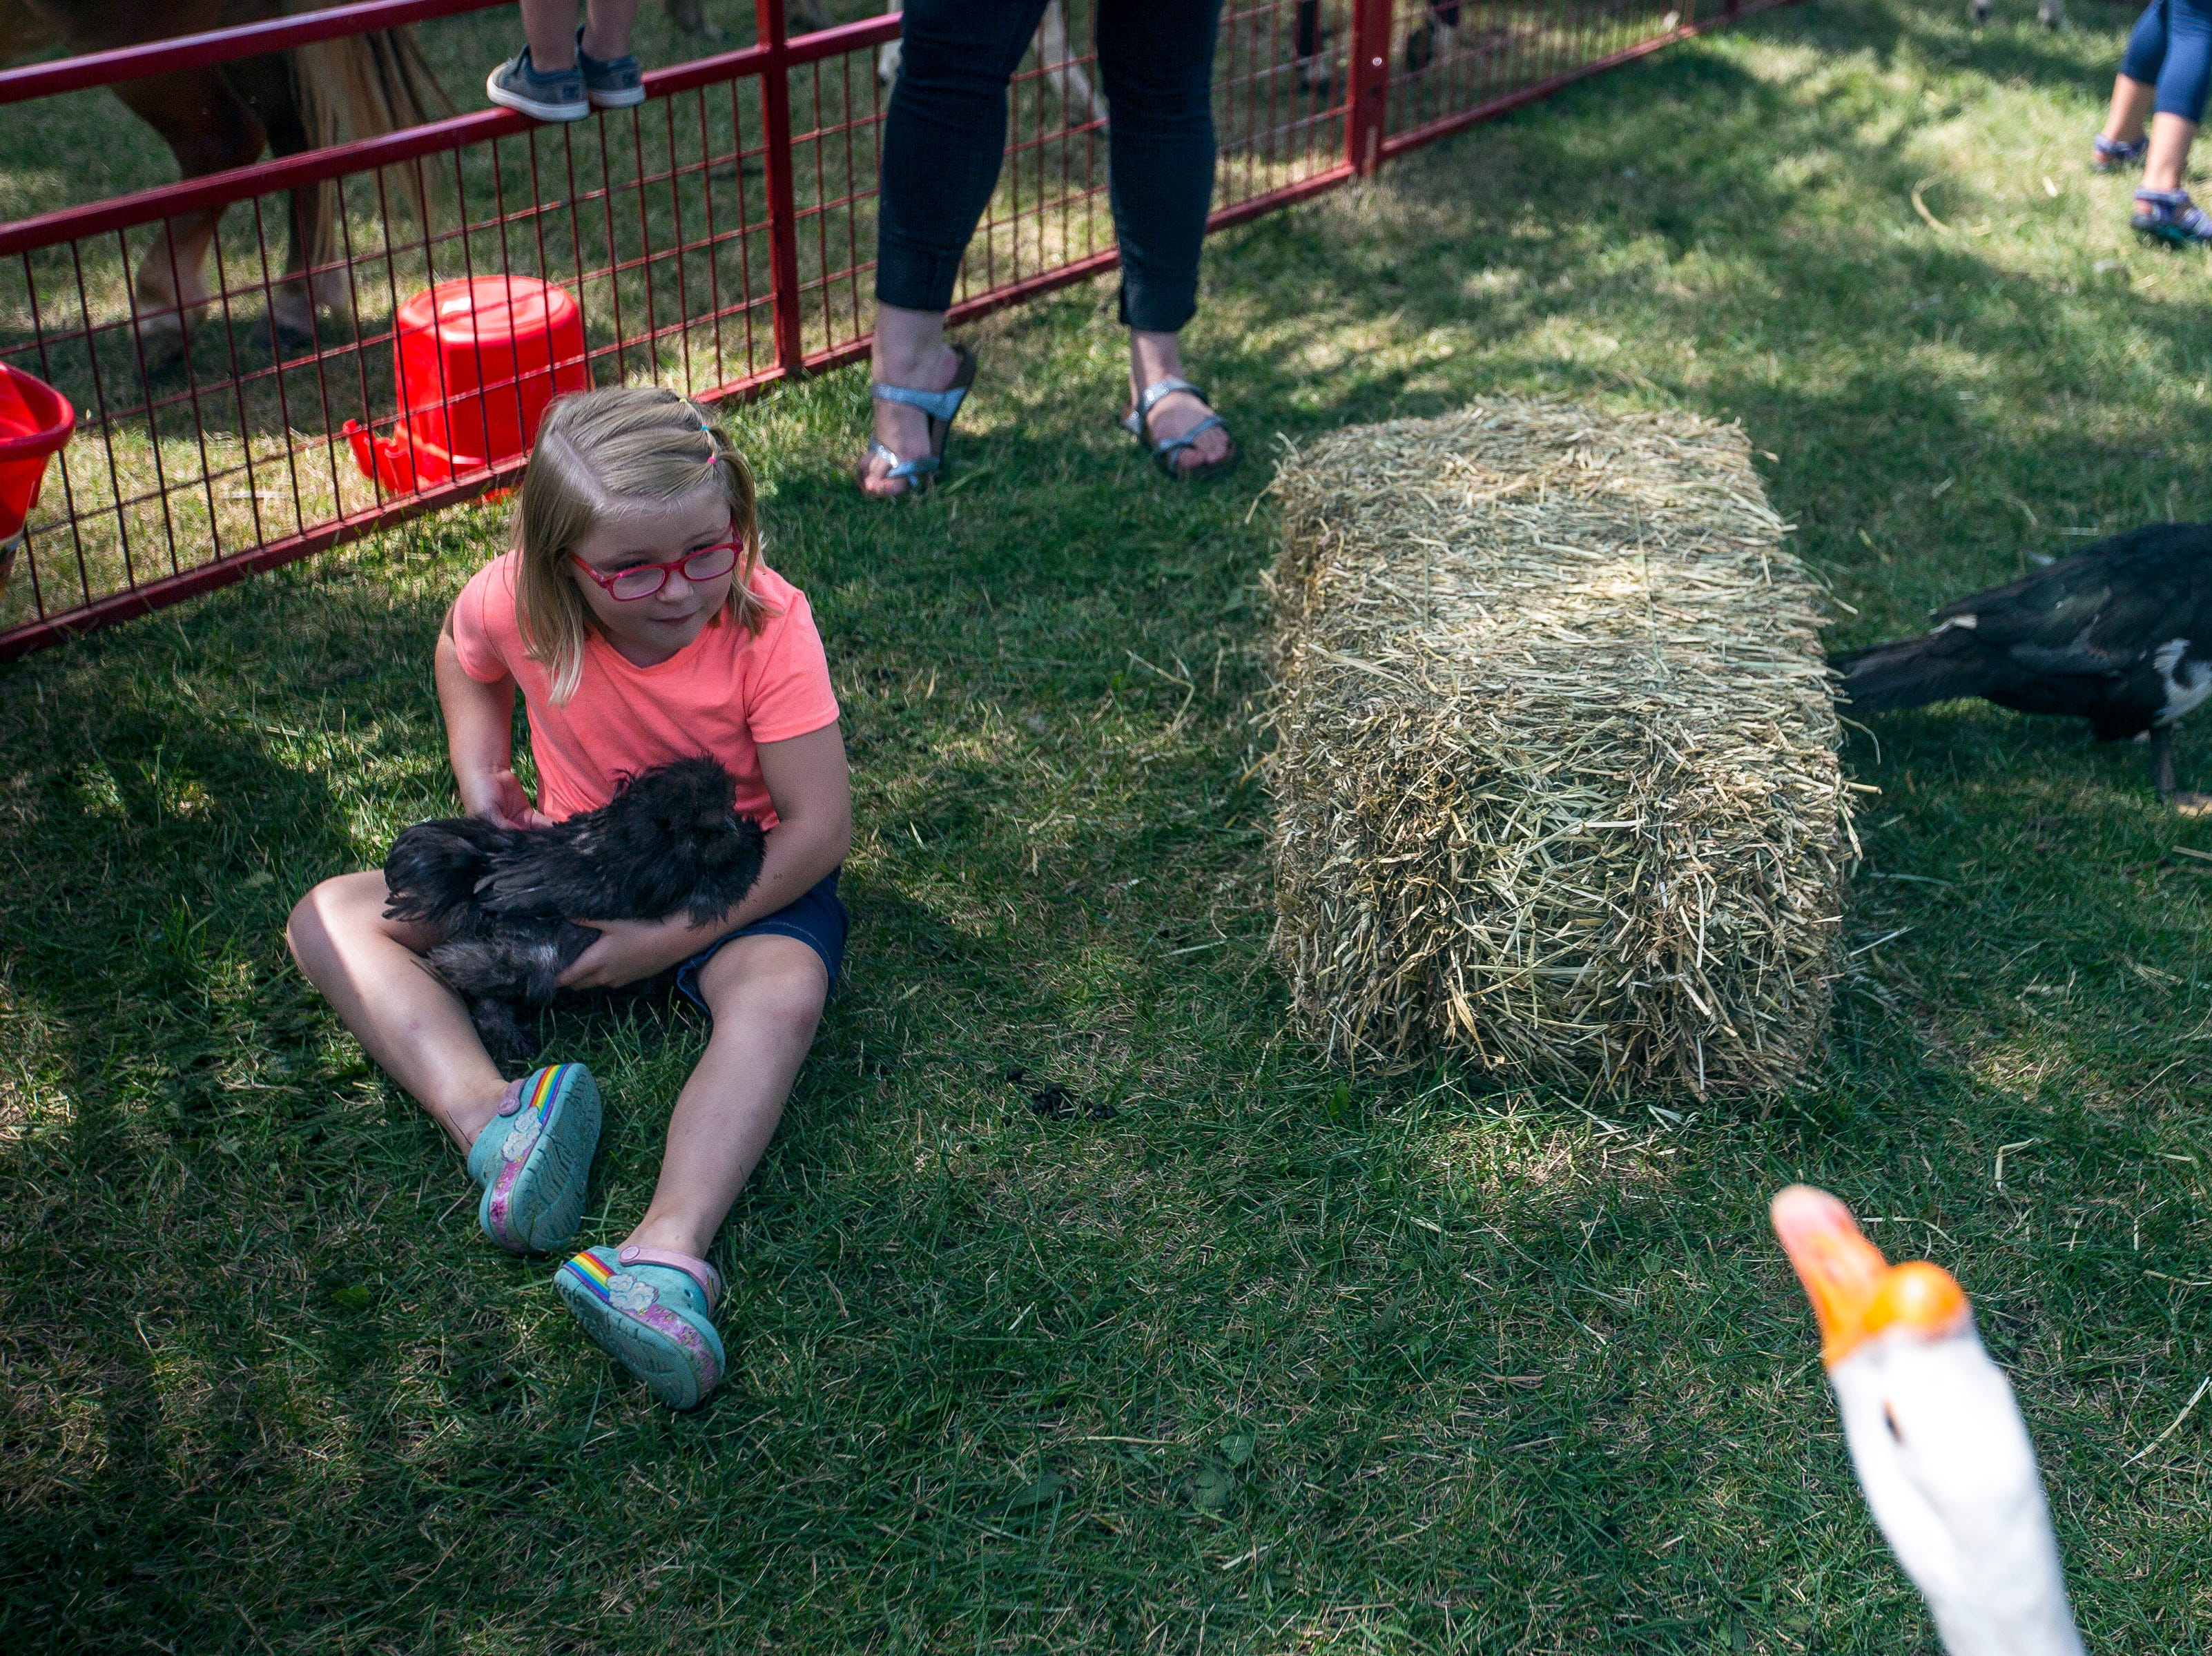 A girl pets a chicken at a petting zoo during Celebrate Plover at Lake Pacawa Park in Plover, Wis., July 28, 2018.